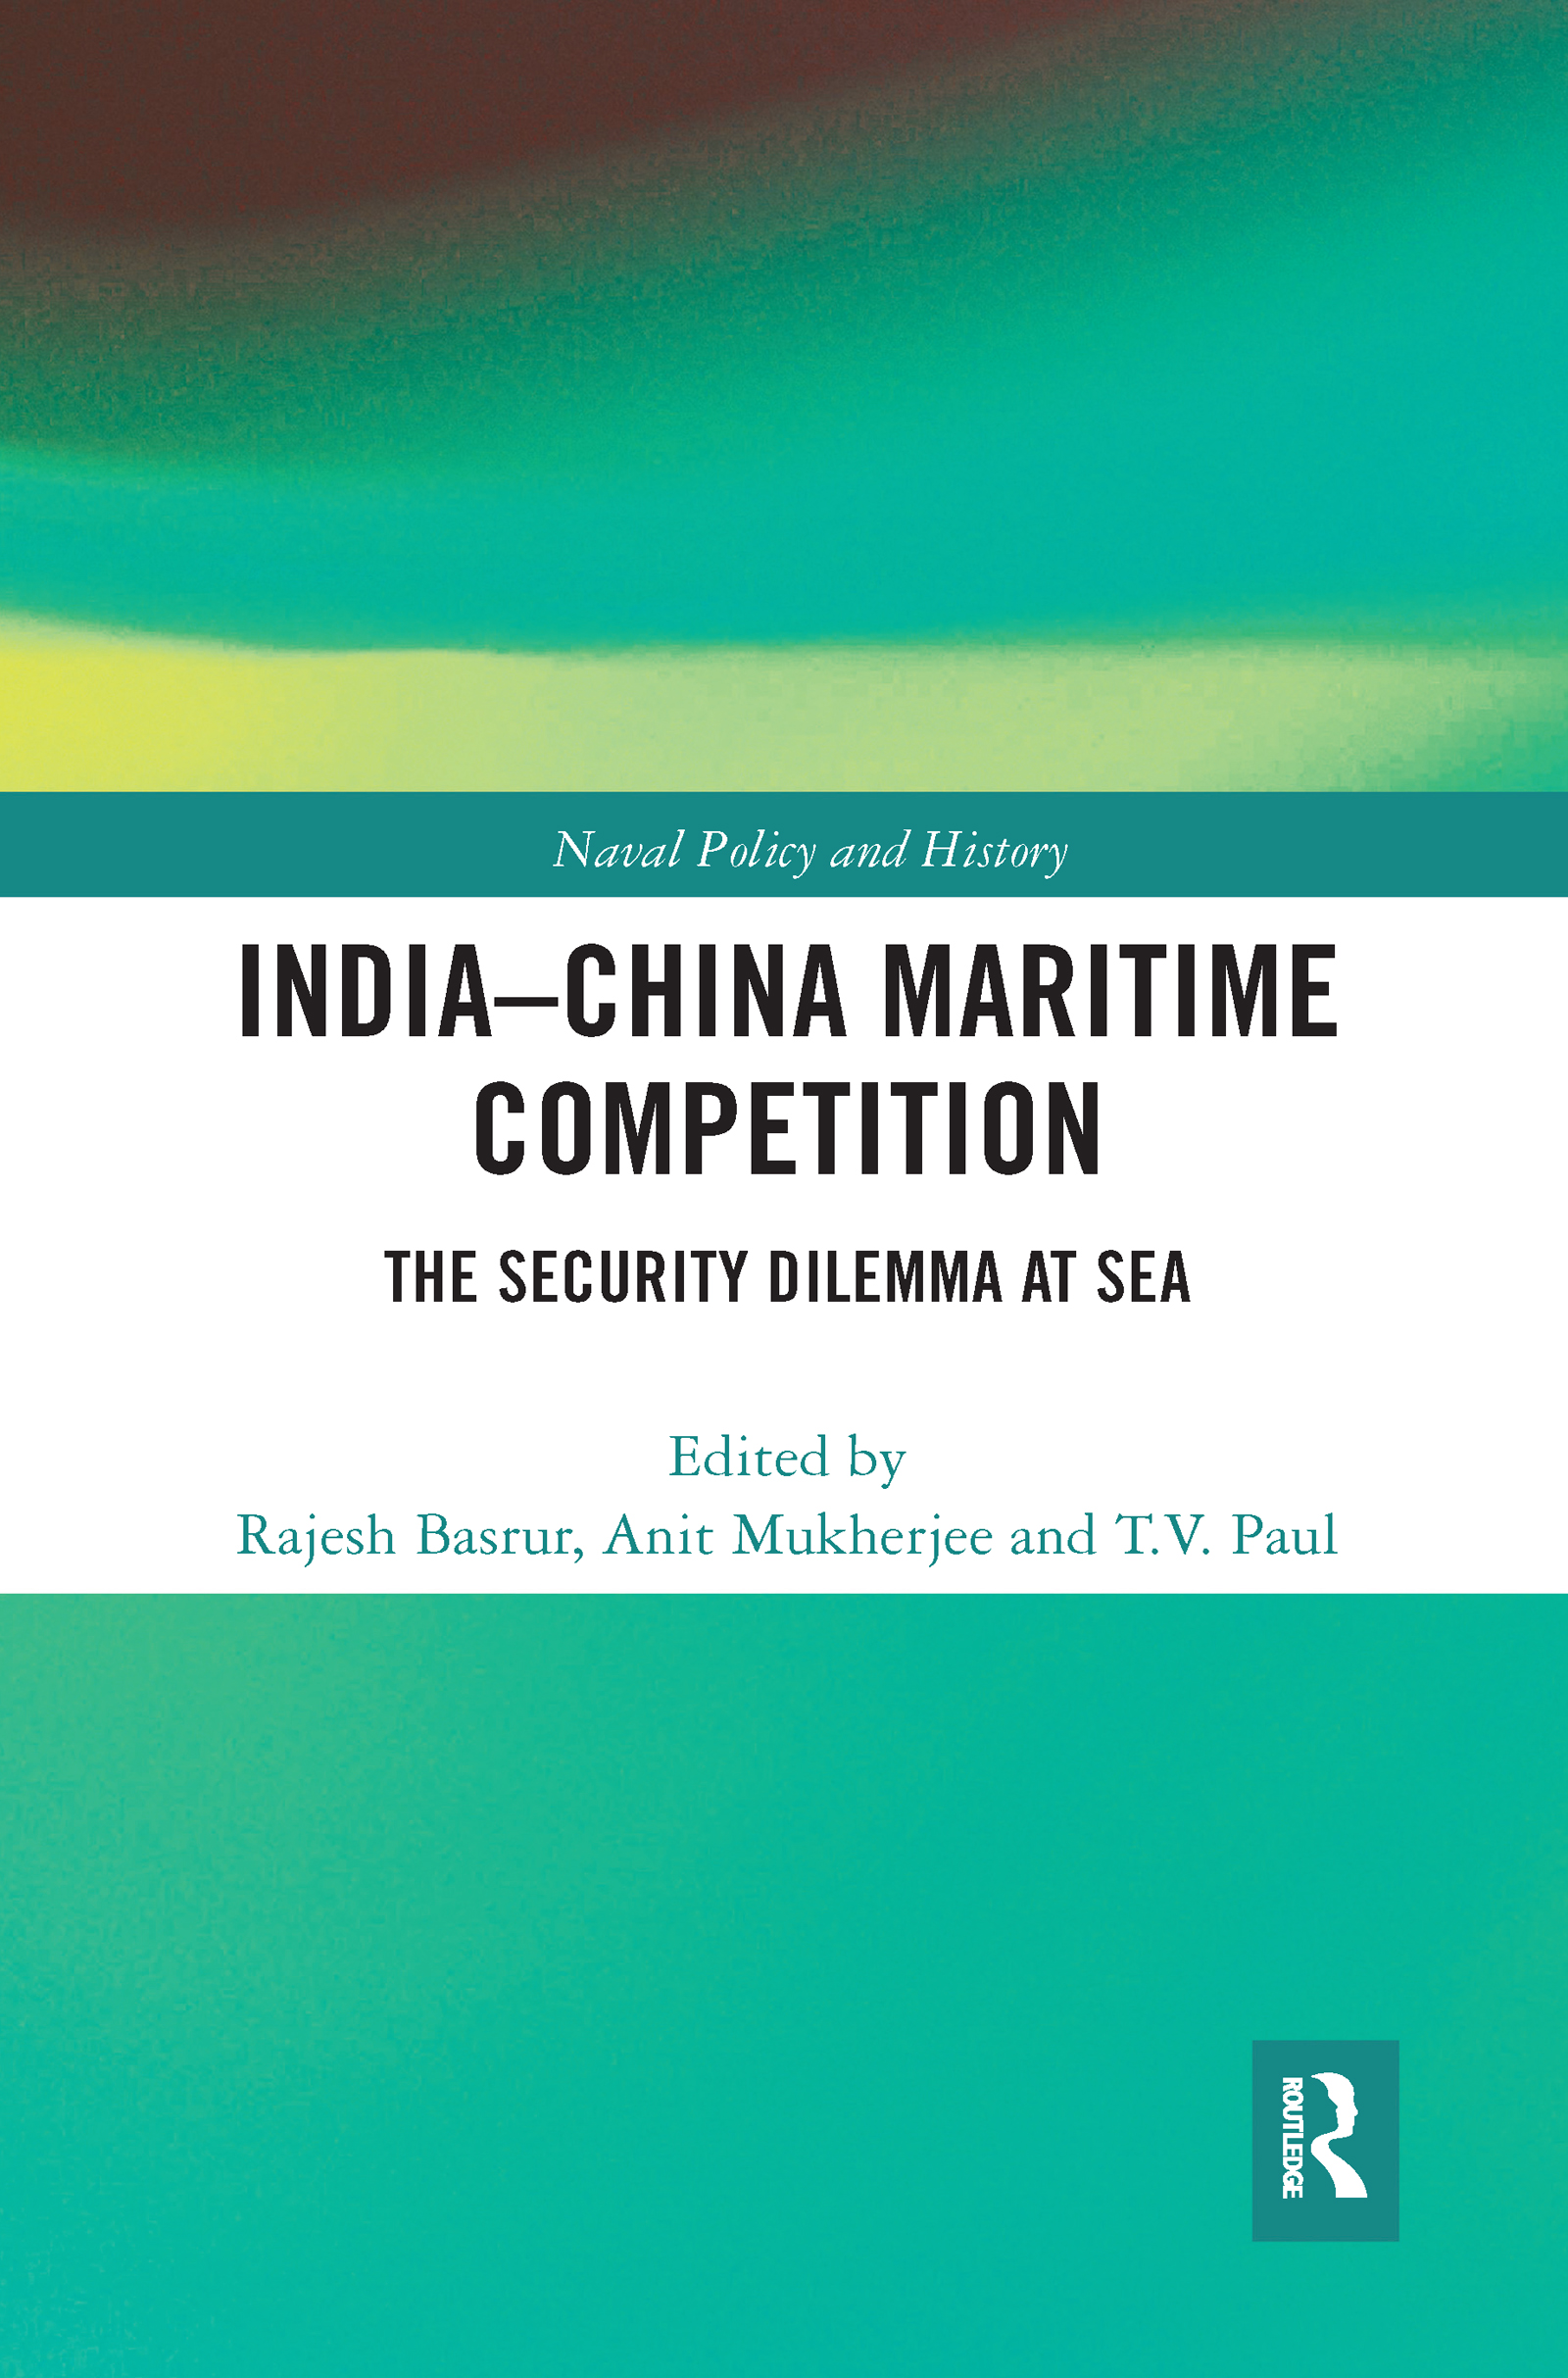 India-China Maritime Competition